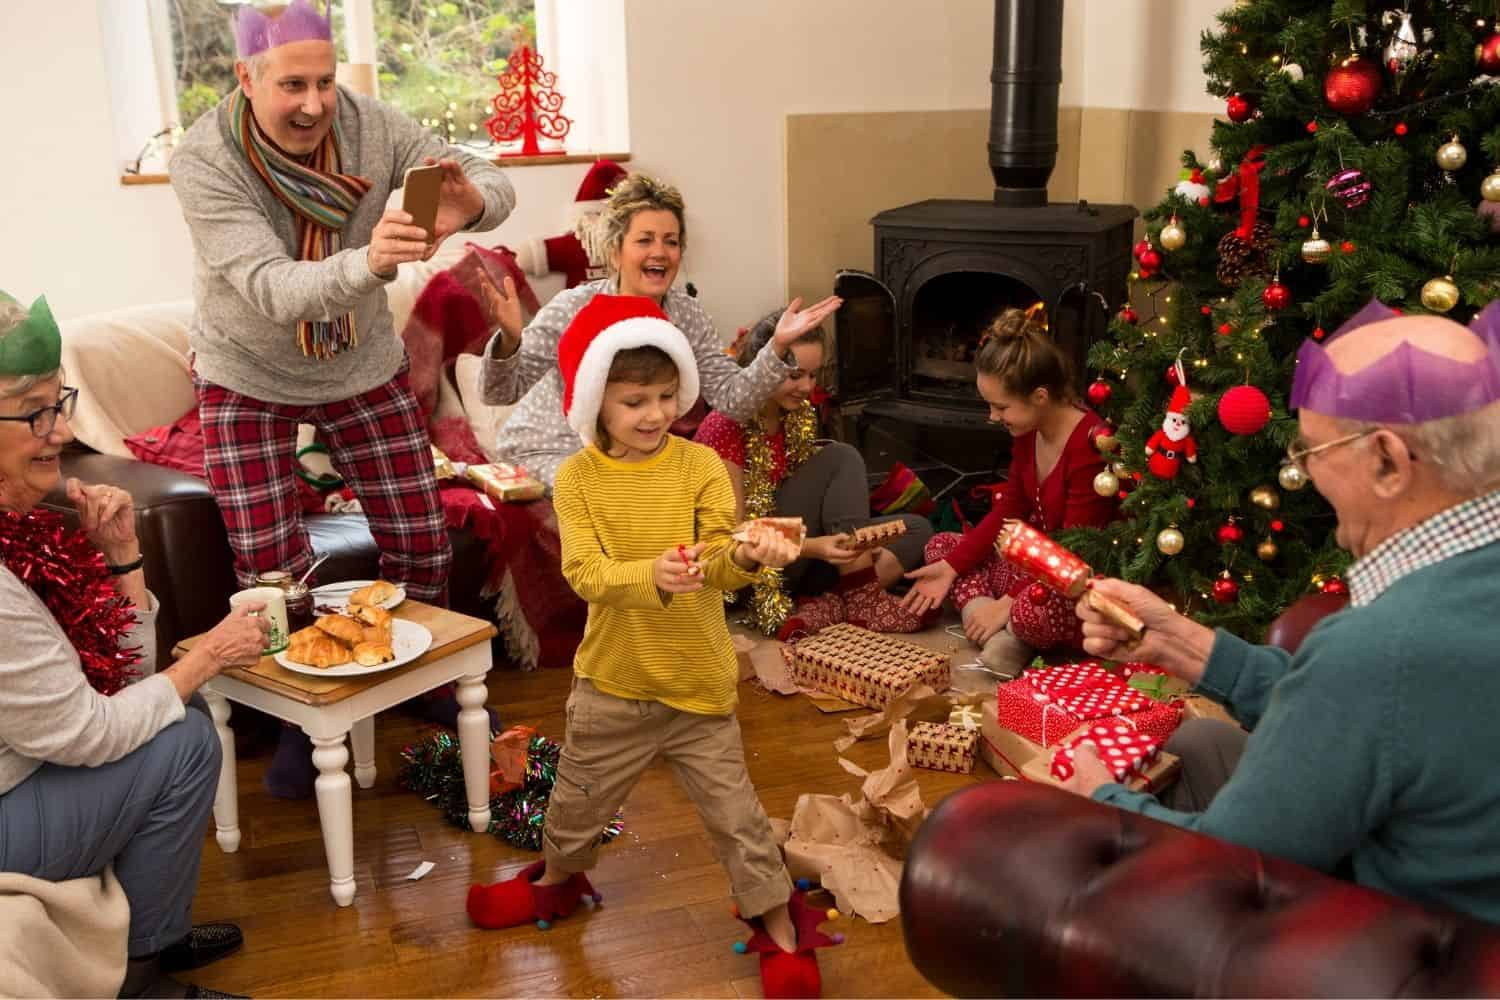 a family exchanging gifts on Christmas morning